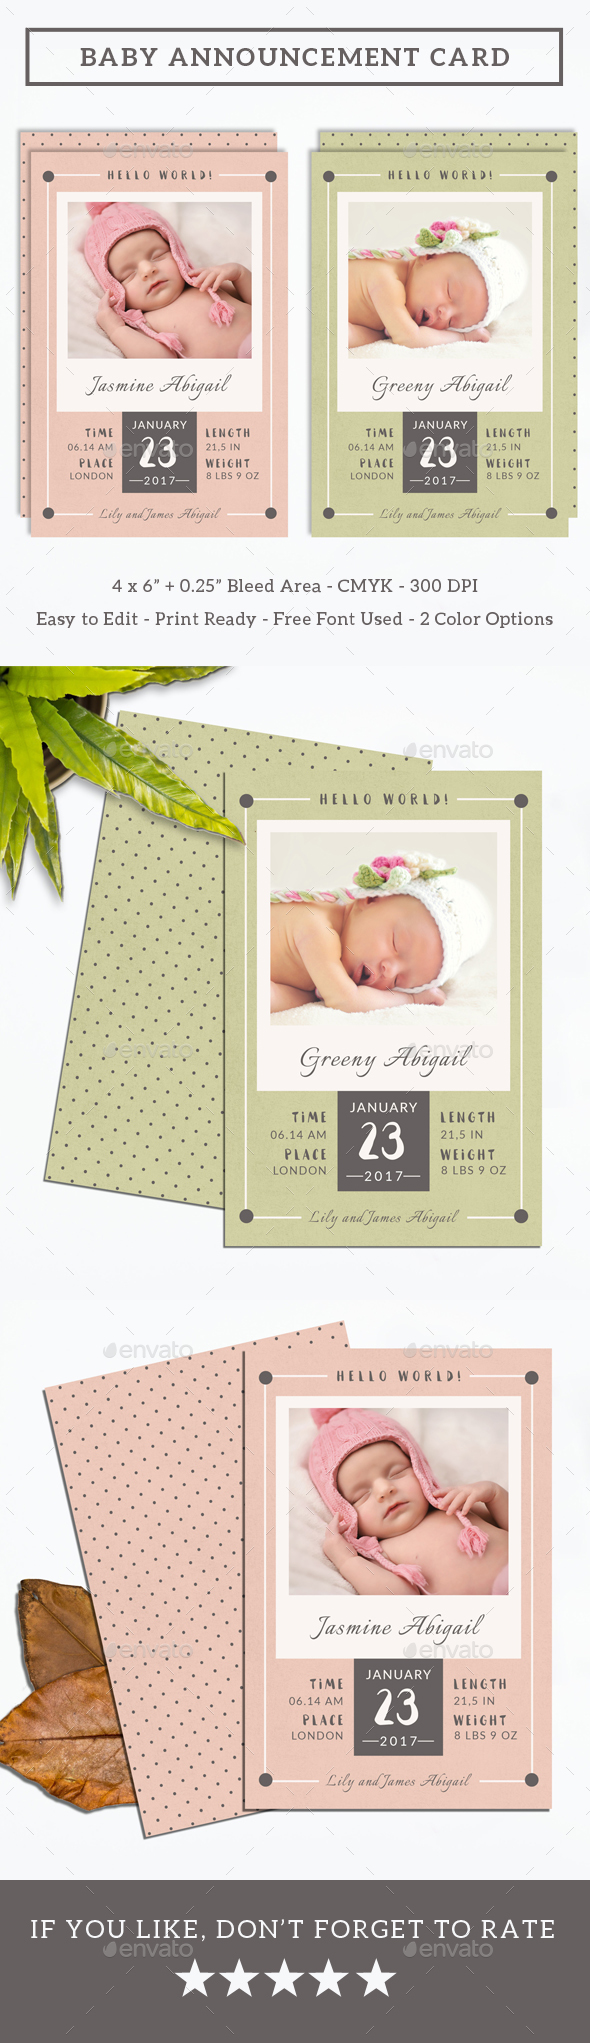 Baby Announcement Card - Cards & Invites Print Templates